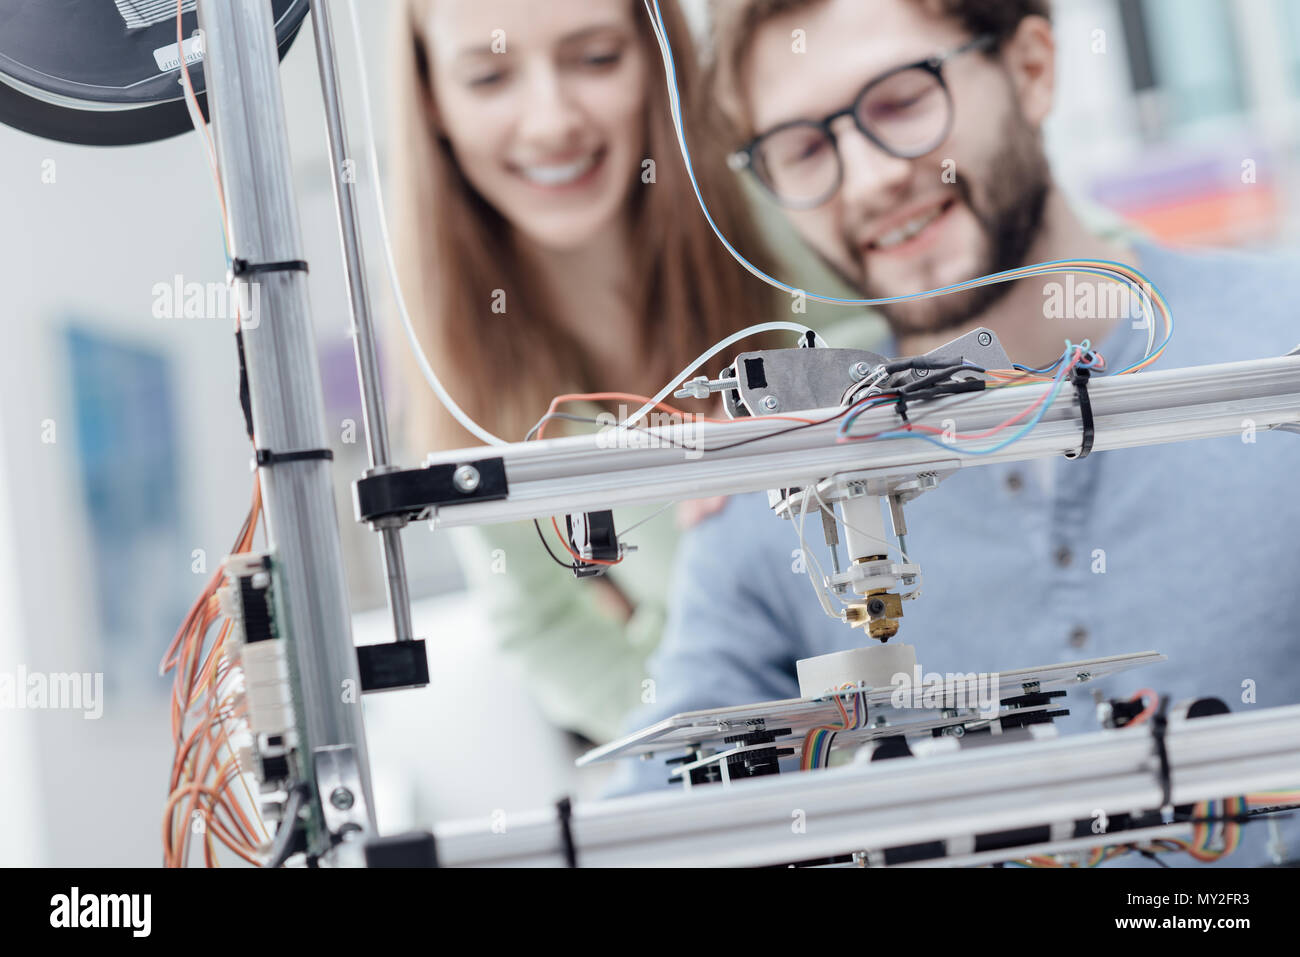 Smiling students using a 3D printer in the school laboratory, they are printing prototypes, technology and learning concept - Stock Image